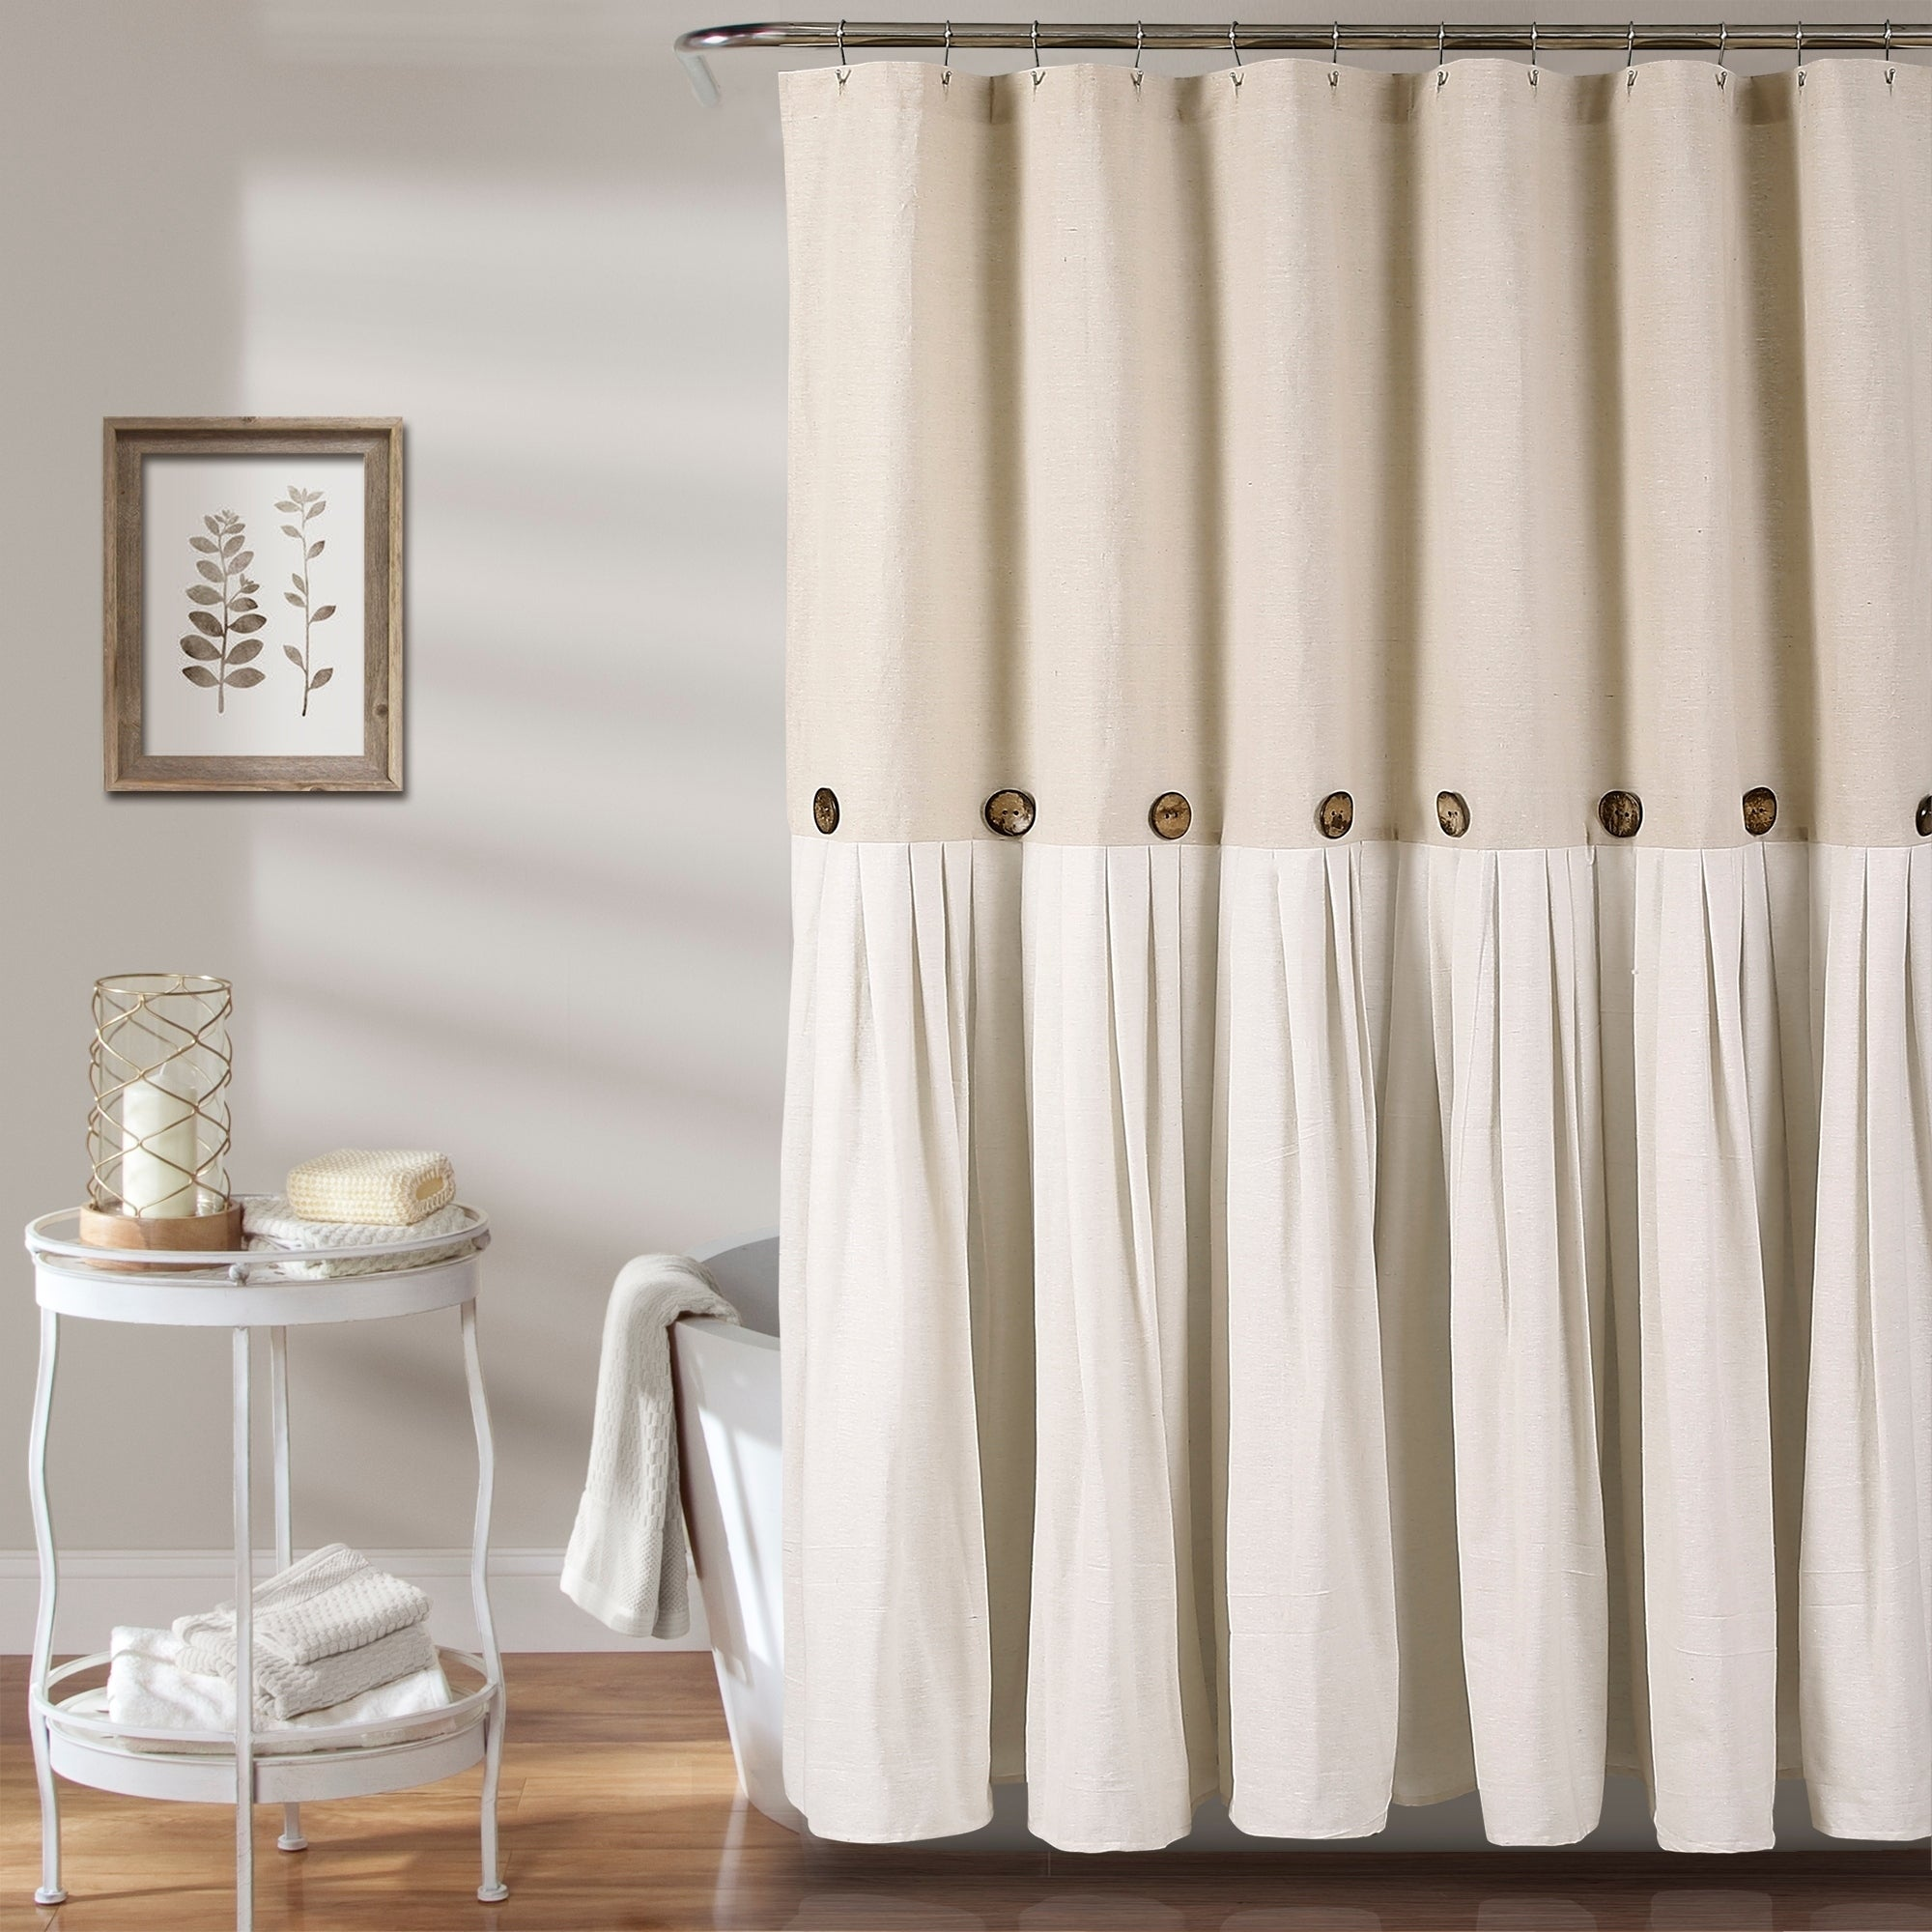 Shower Curtains Find Great Shower Curtains Accessories